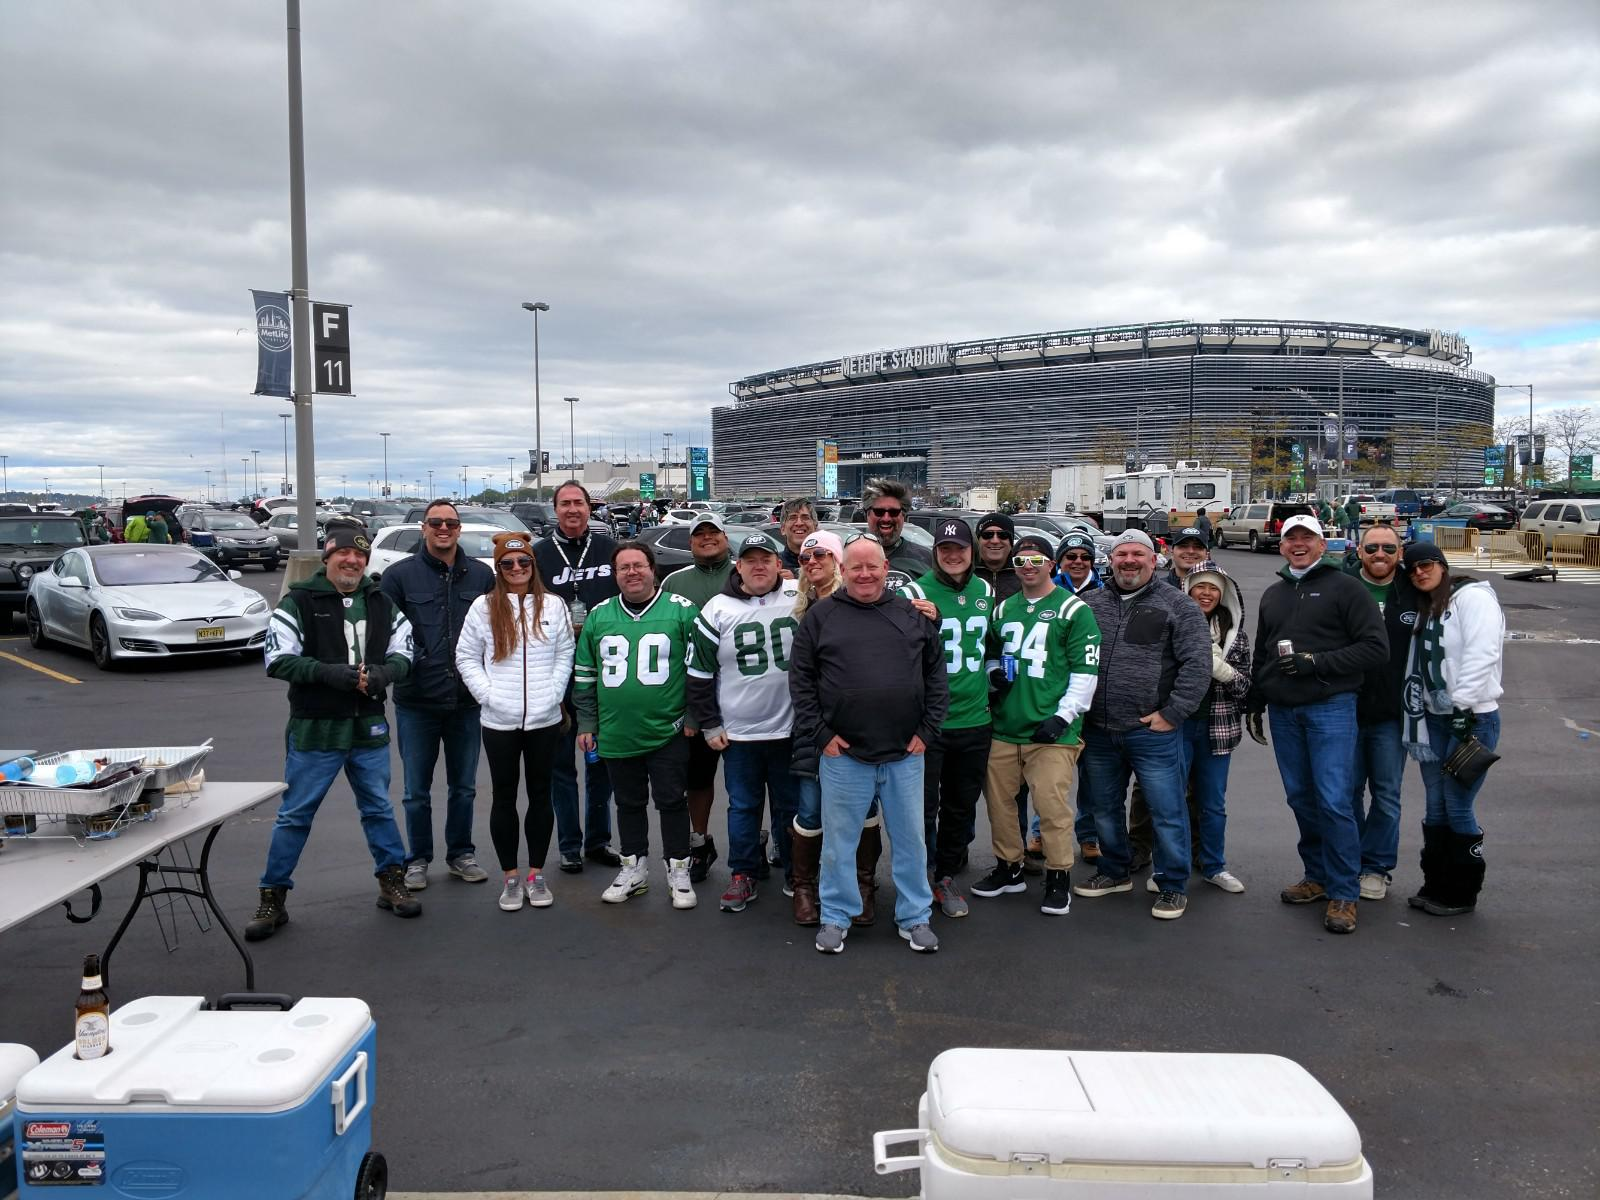 JetNation Group Outing: Jets \ Vikings Tickets & Tailgate 10/21: New Thread Updated